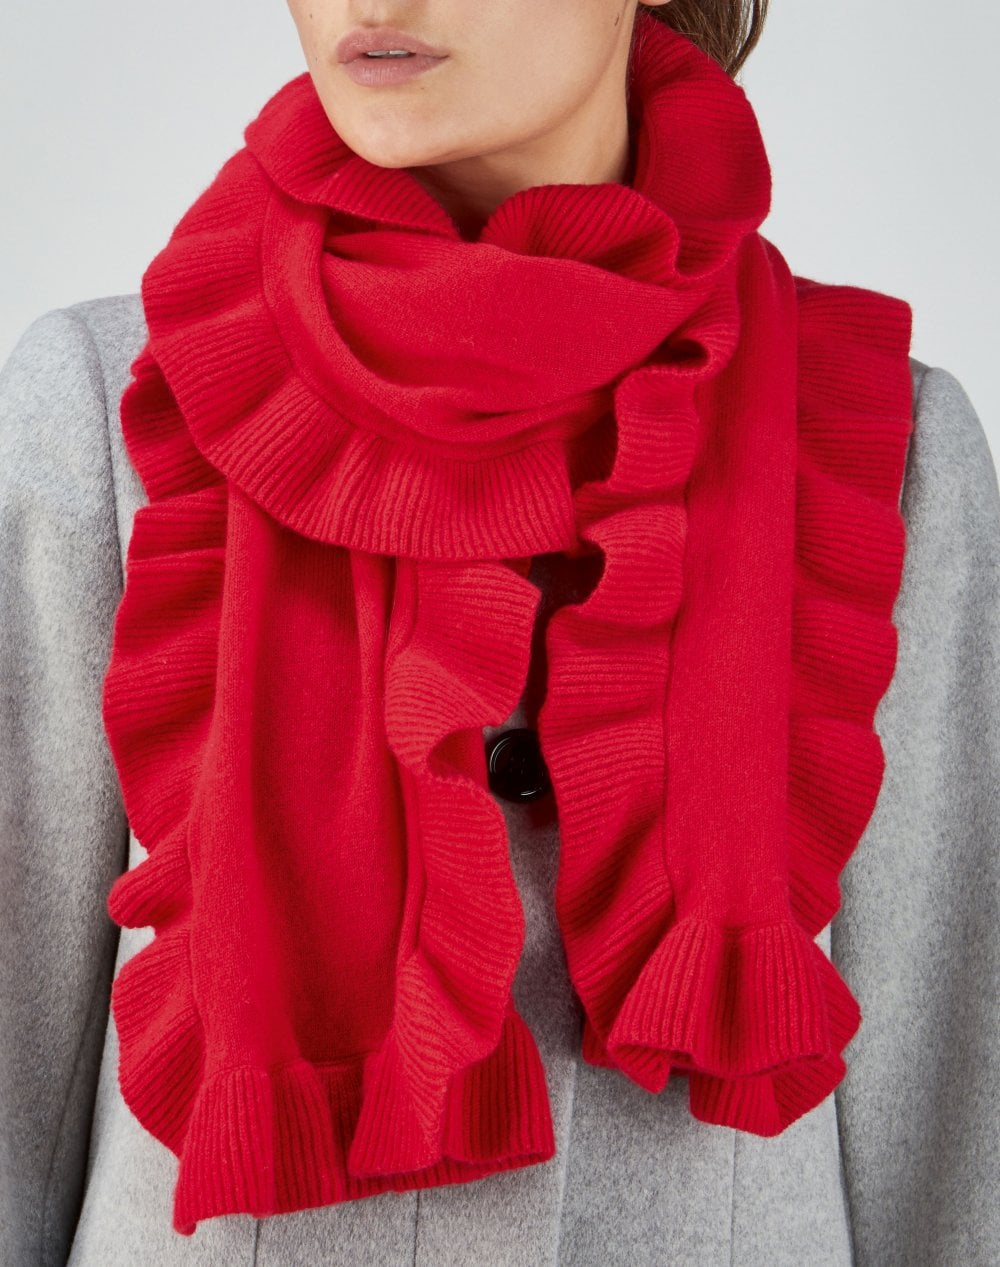 How To Knit A Ruffle Scarf Free Pattern Cashmere Ruffle Scarf Pillarbox Red